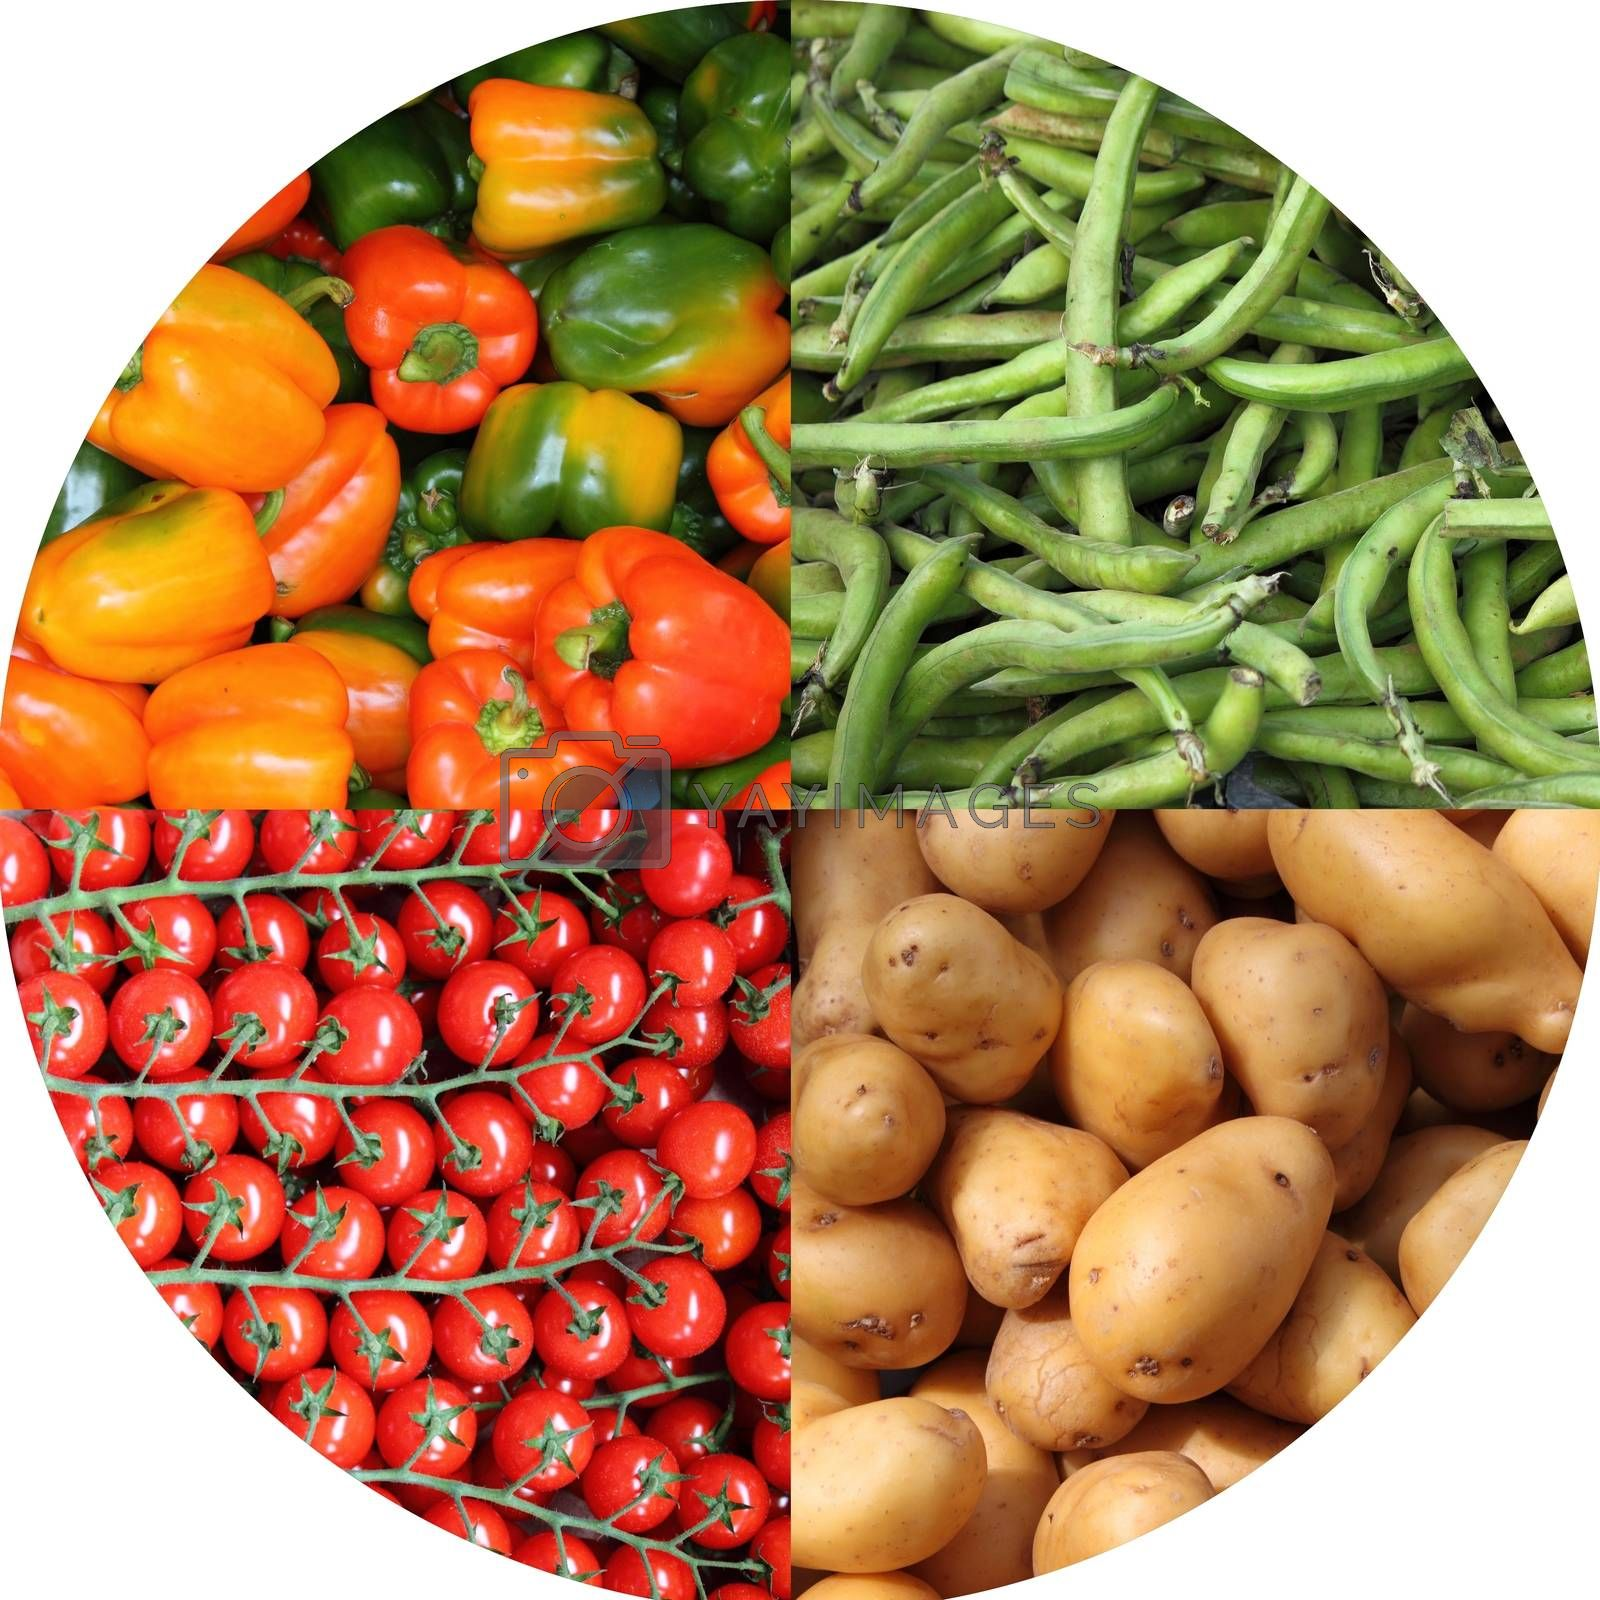 Fresh vegetables collage by alessandro0770